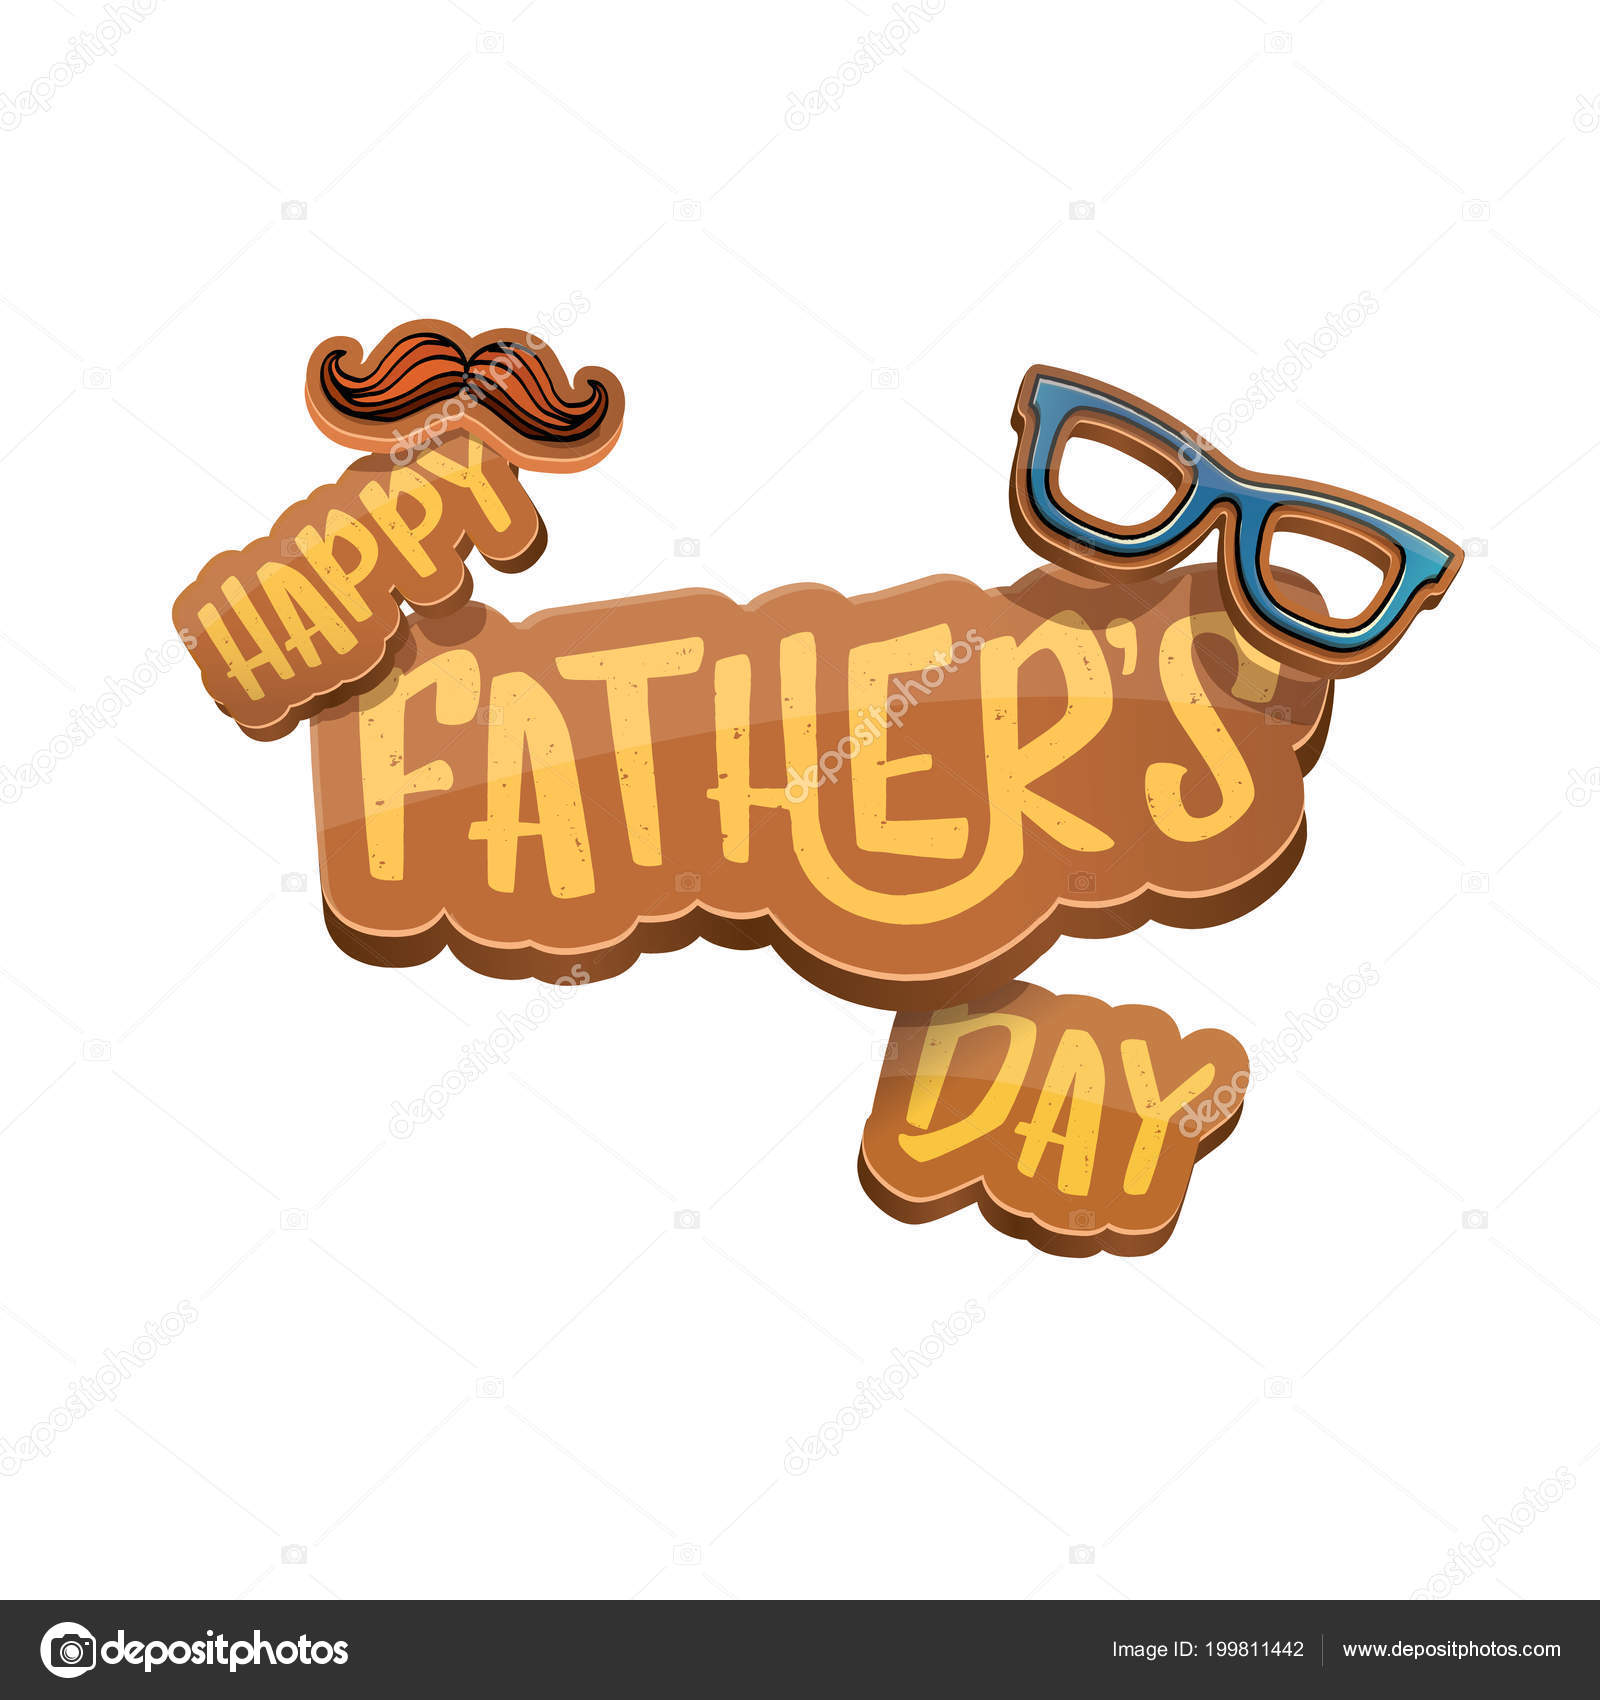 Happy fathers day vector cartoon greeting card fathers day label or happy fathers day vector cartoon greeting card fathers day label or icon isolated on white background zm1ter vektr m4hsunfo